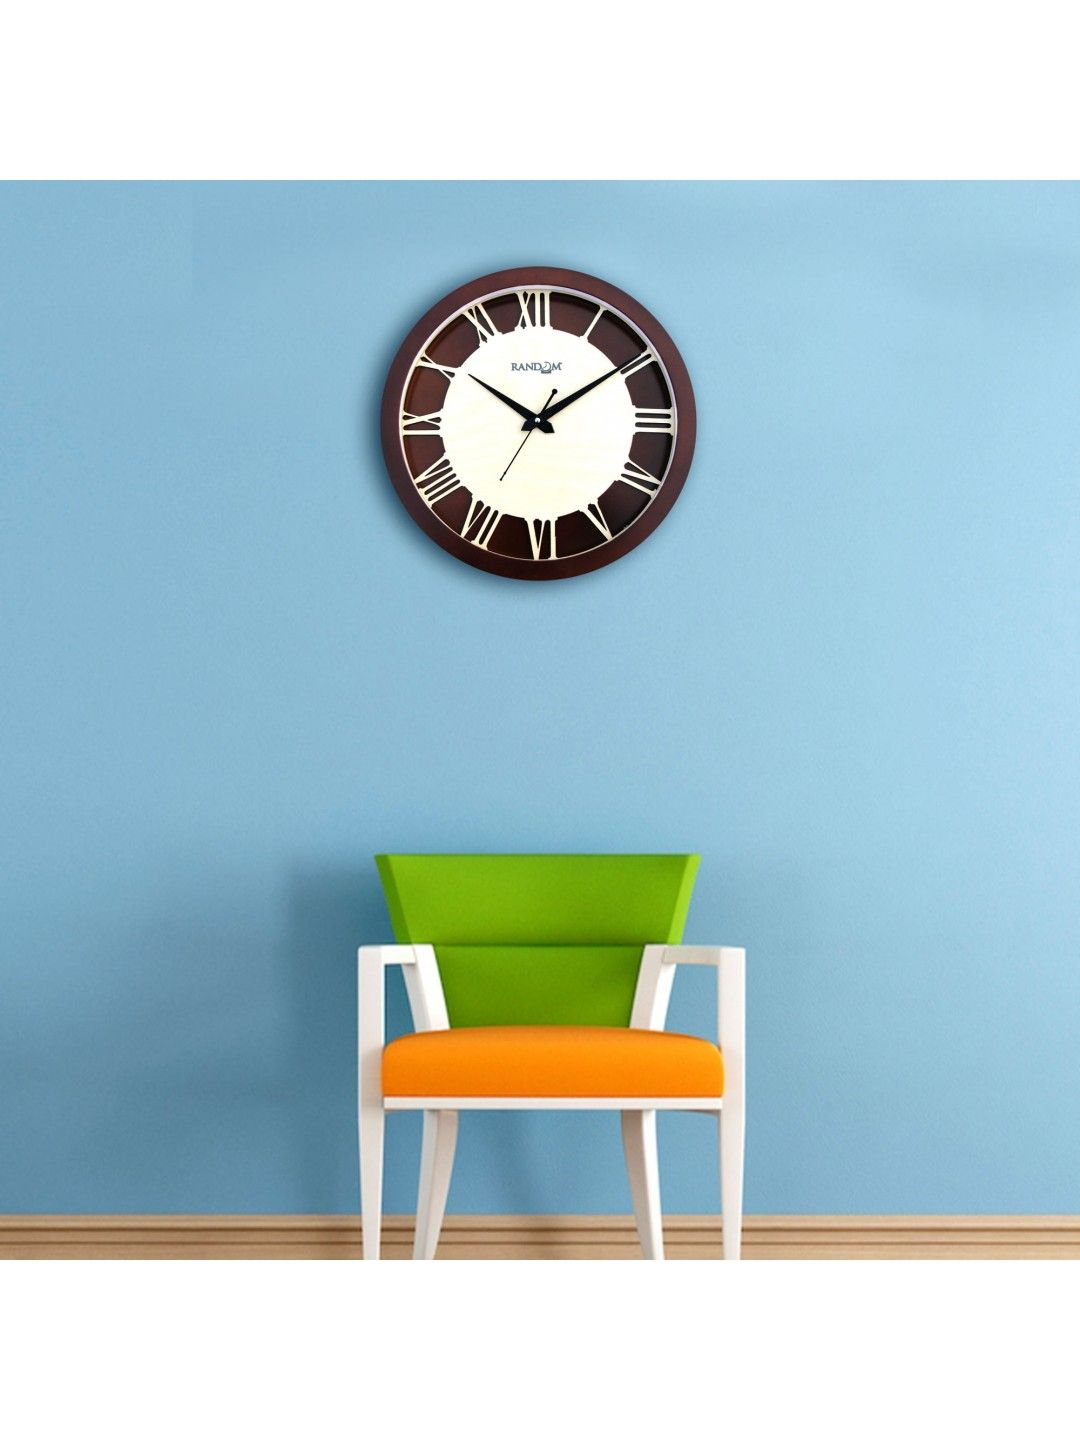 Random carvy roman glass covered analog wall clock buy online random carvy roman glass covered analog wall clock buy online designer random carvy roman glass covered analog wall clock at best price in india in wall amipublicfo Gallery